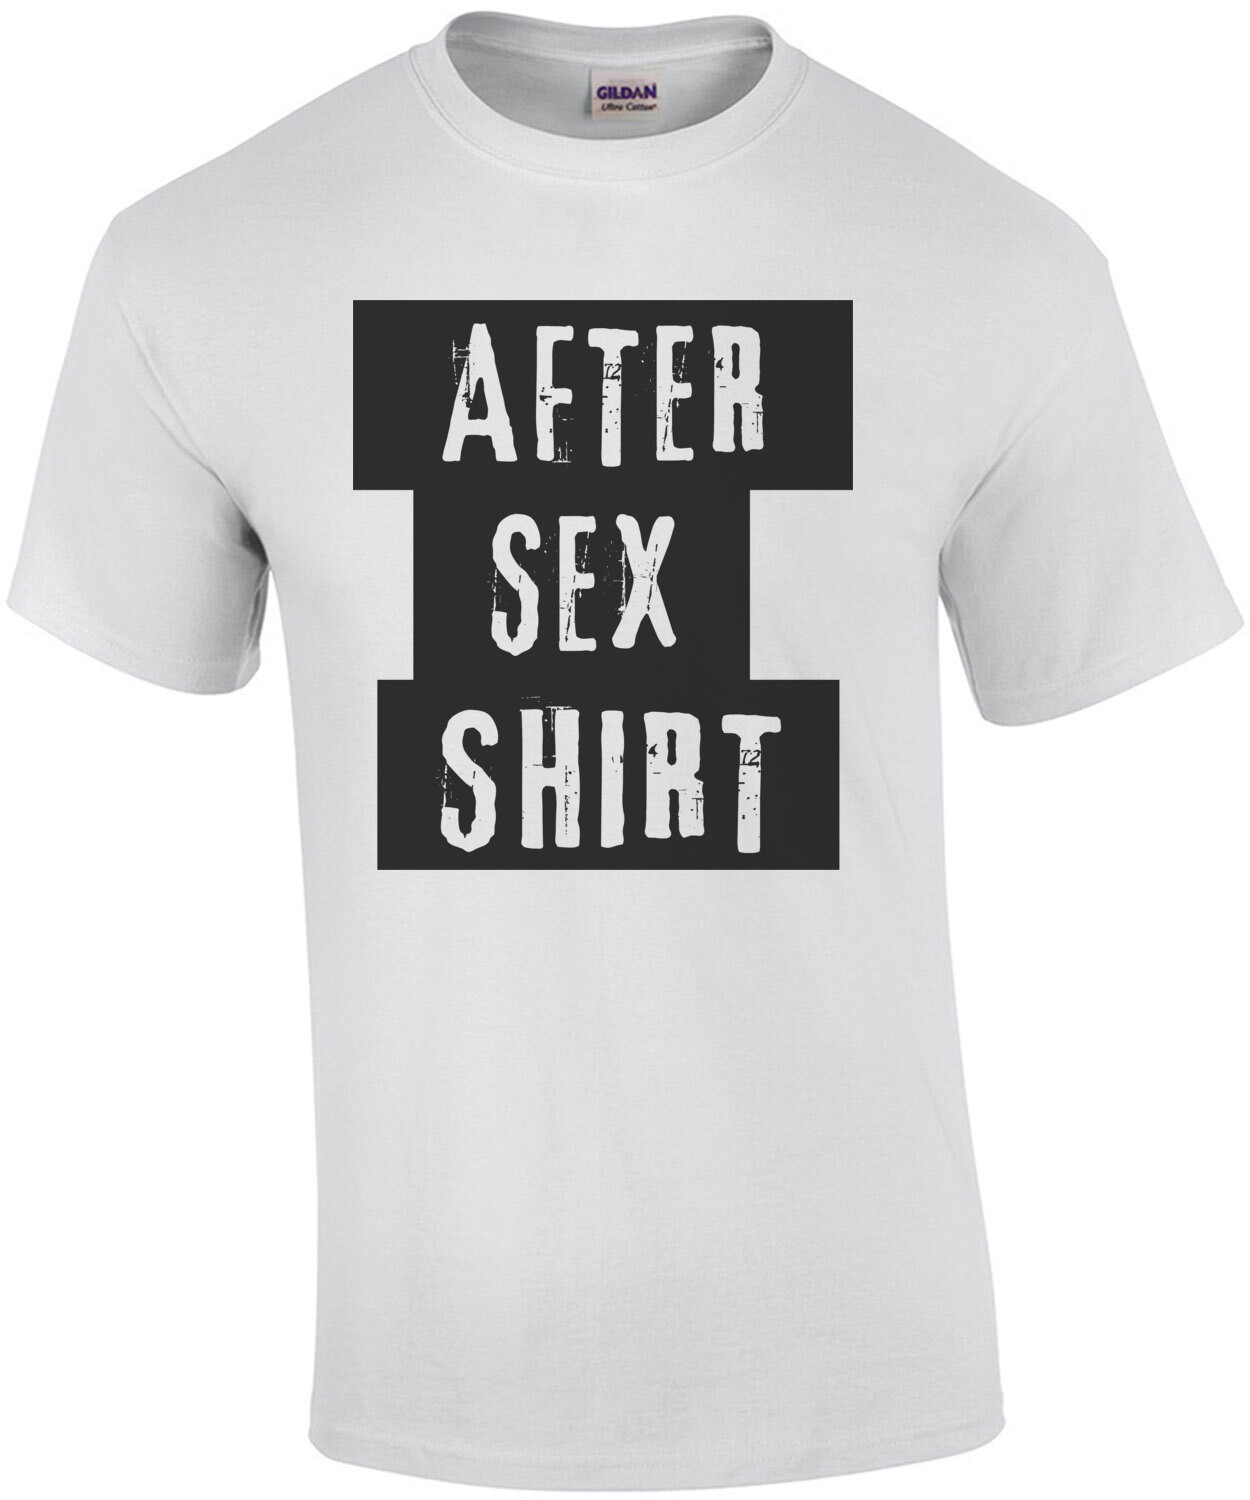 After Sex Shirt - Funny offensive t-shirt